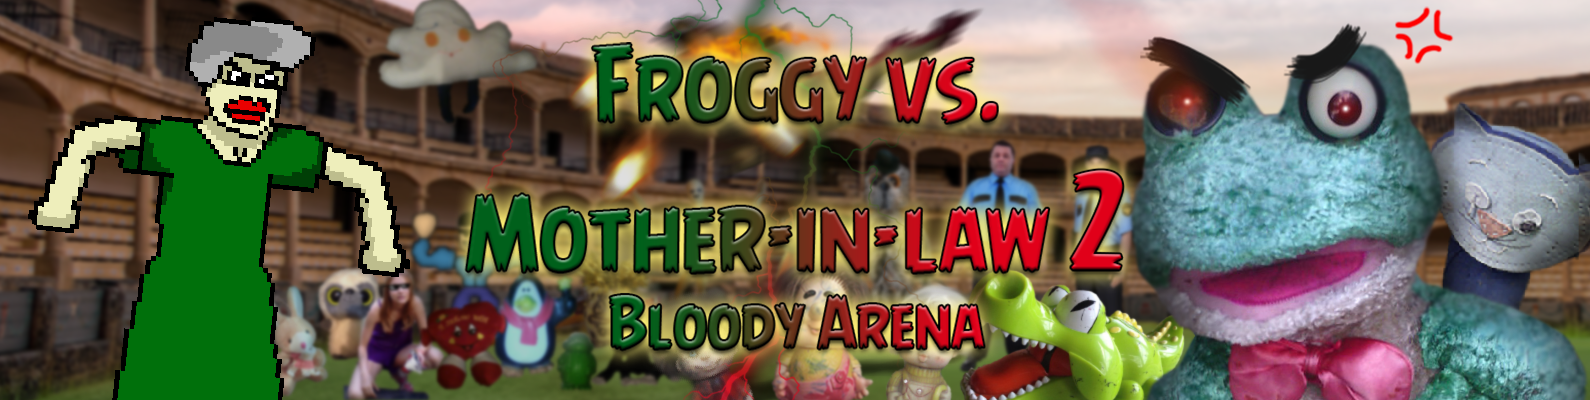 Froggy vs. Mother-in-law 2